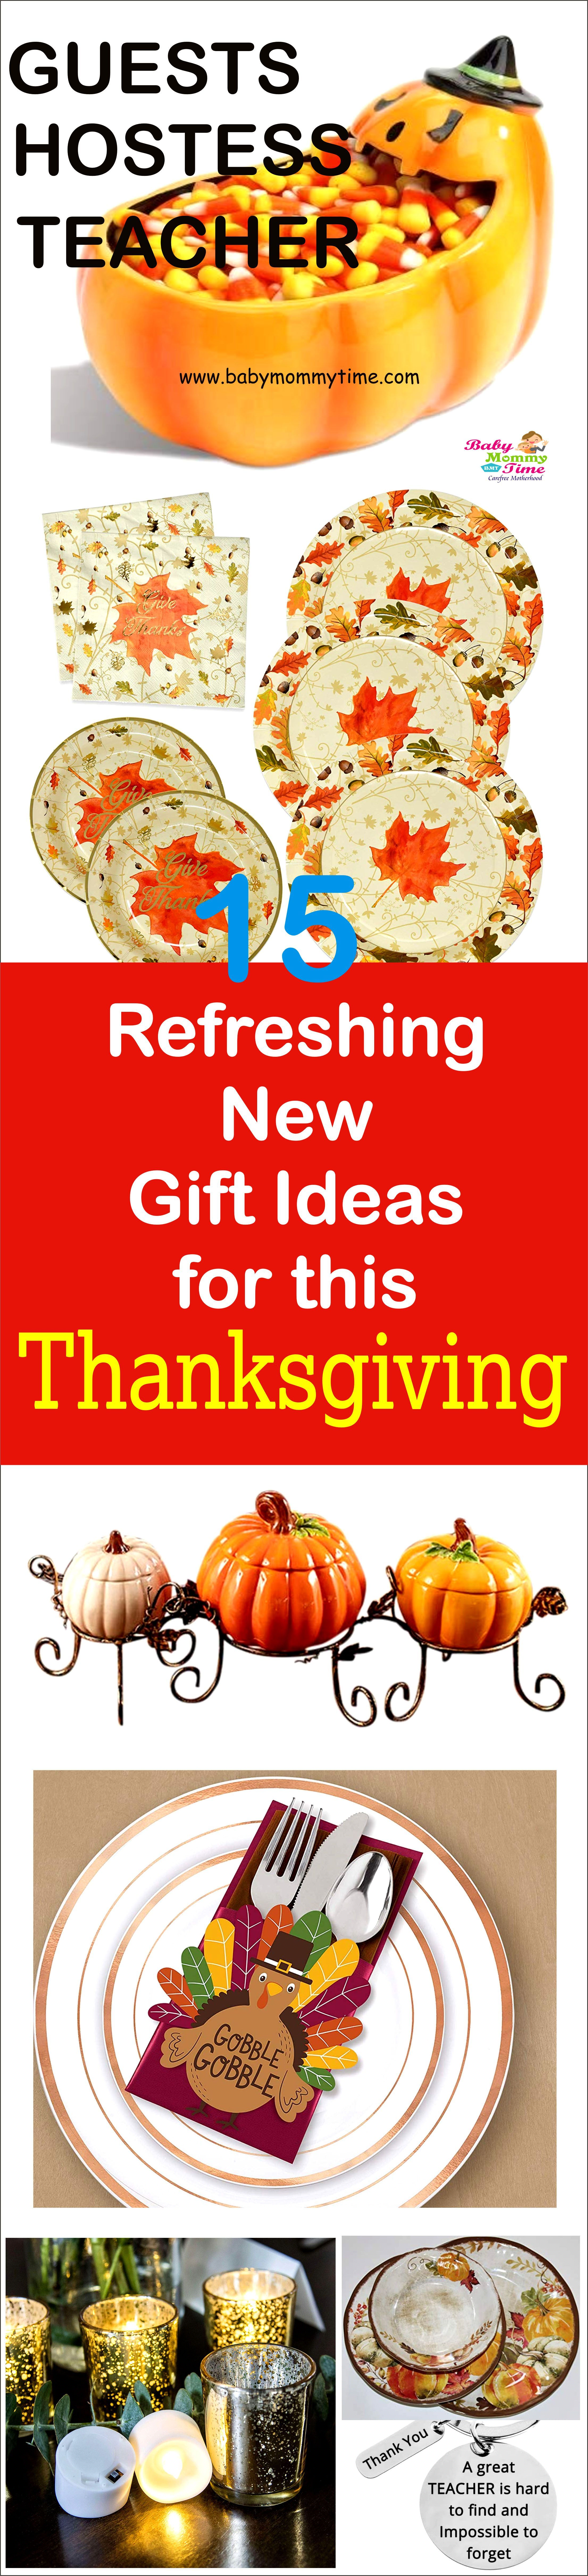 15 Refreshing New Gift Ideas For This Thanksgiving In Many Countries People Exchange G In 2020 Teacher Favorite Things Teachers Thanksgiving Thanksgiving Gift Tags